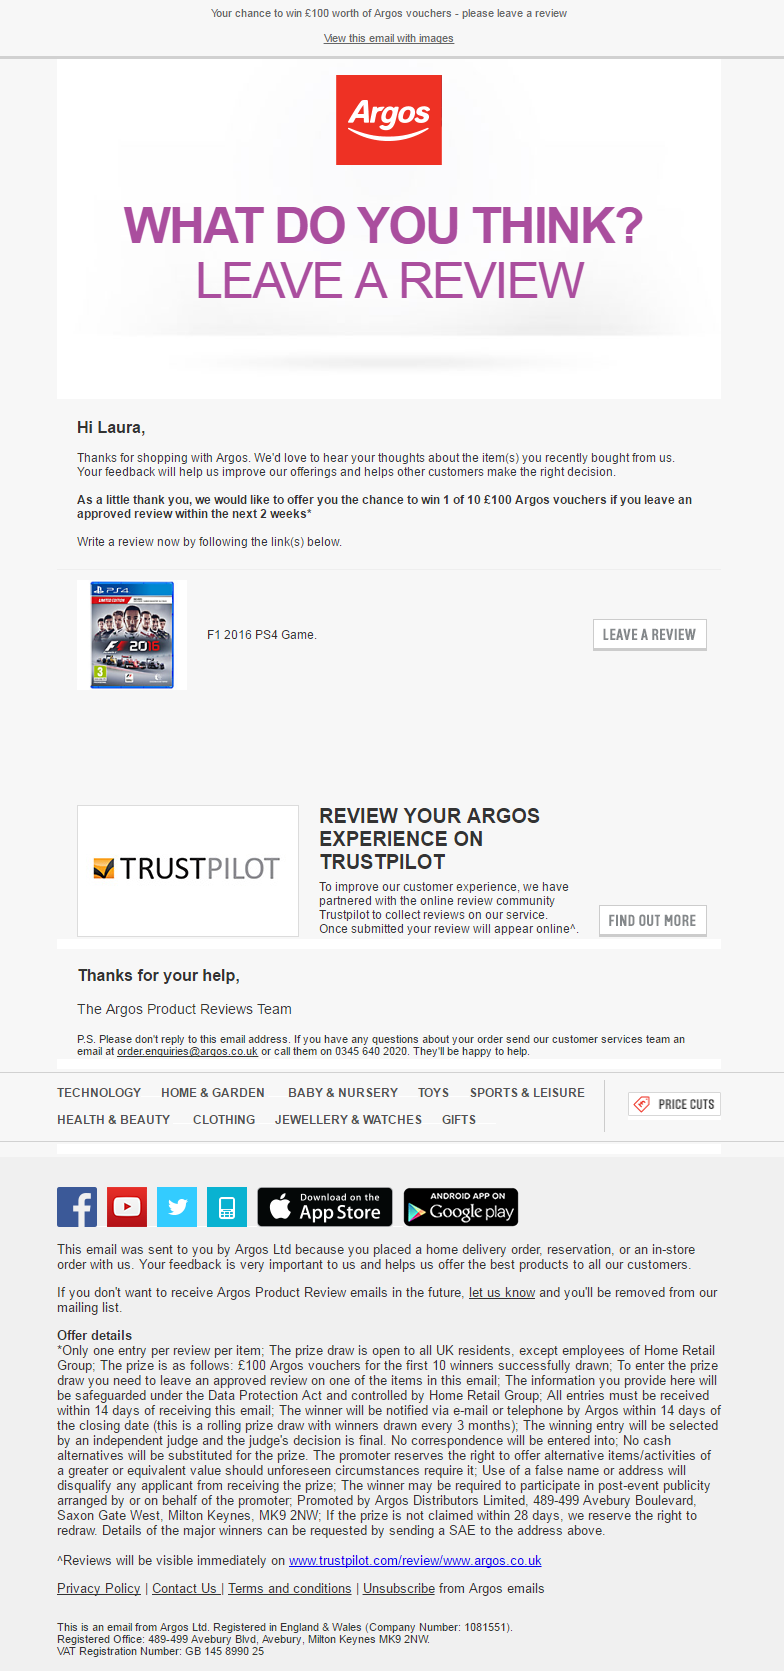 Review Request Email From Argos Showing Cart Of Recent Order Emailmarketing Email Mar Building Design Software Building Information Modeling Email Templates